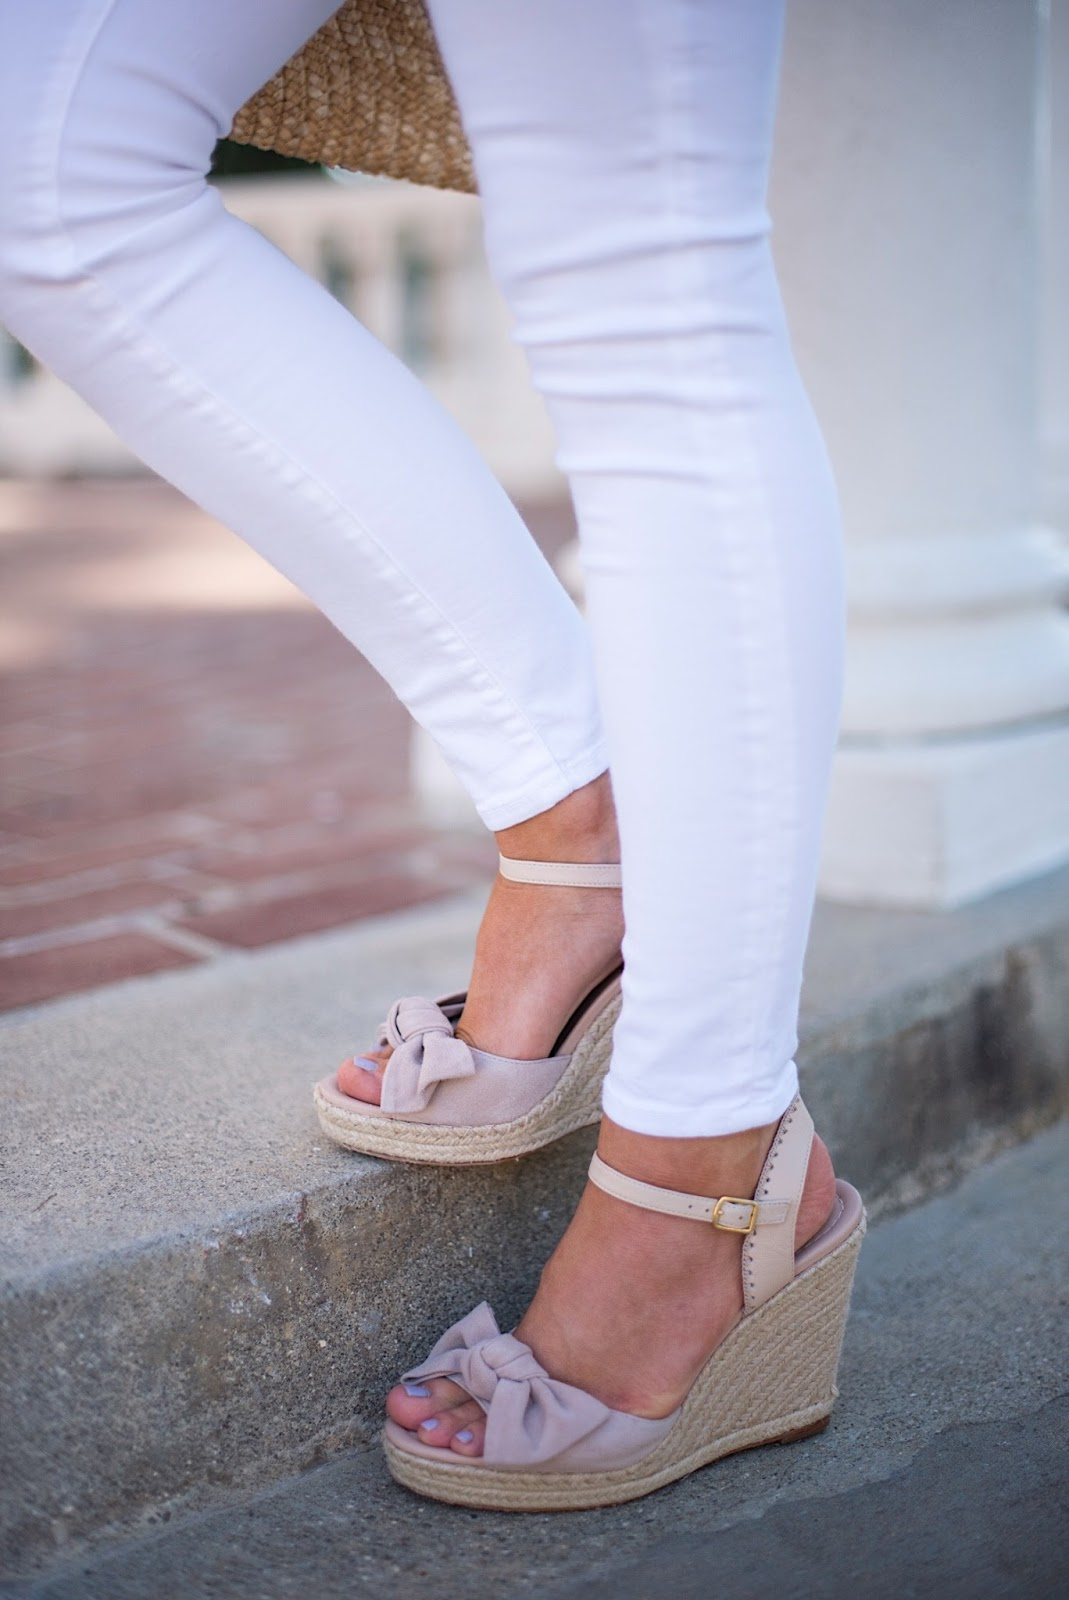 Kate Spade Bow Wedges - Click through to see more on Something Delightful Blog